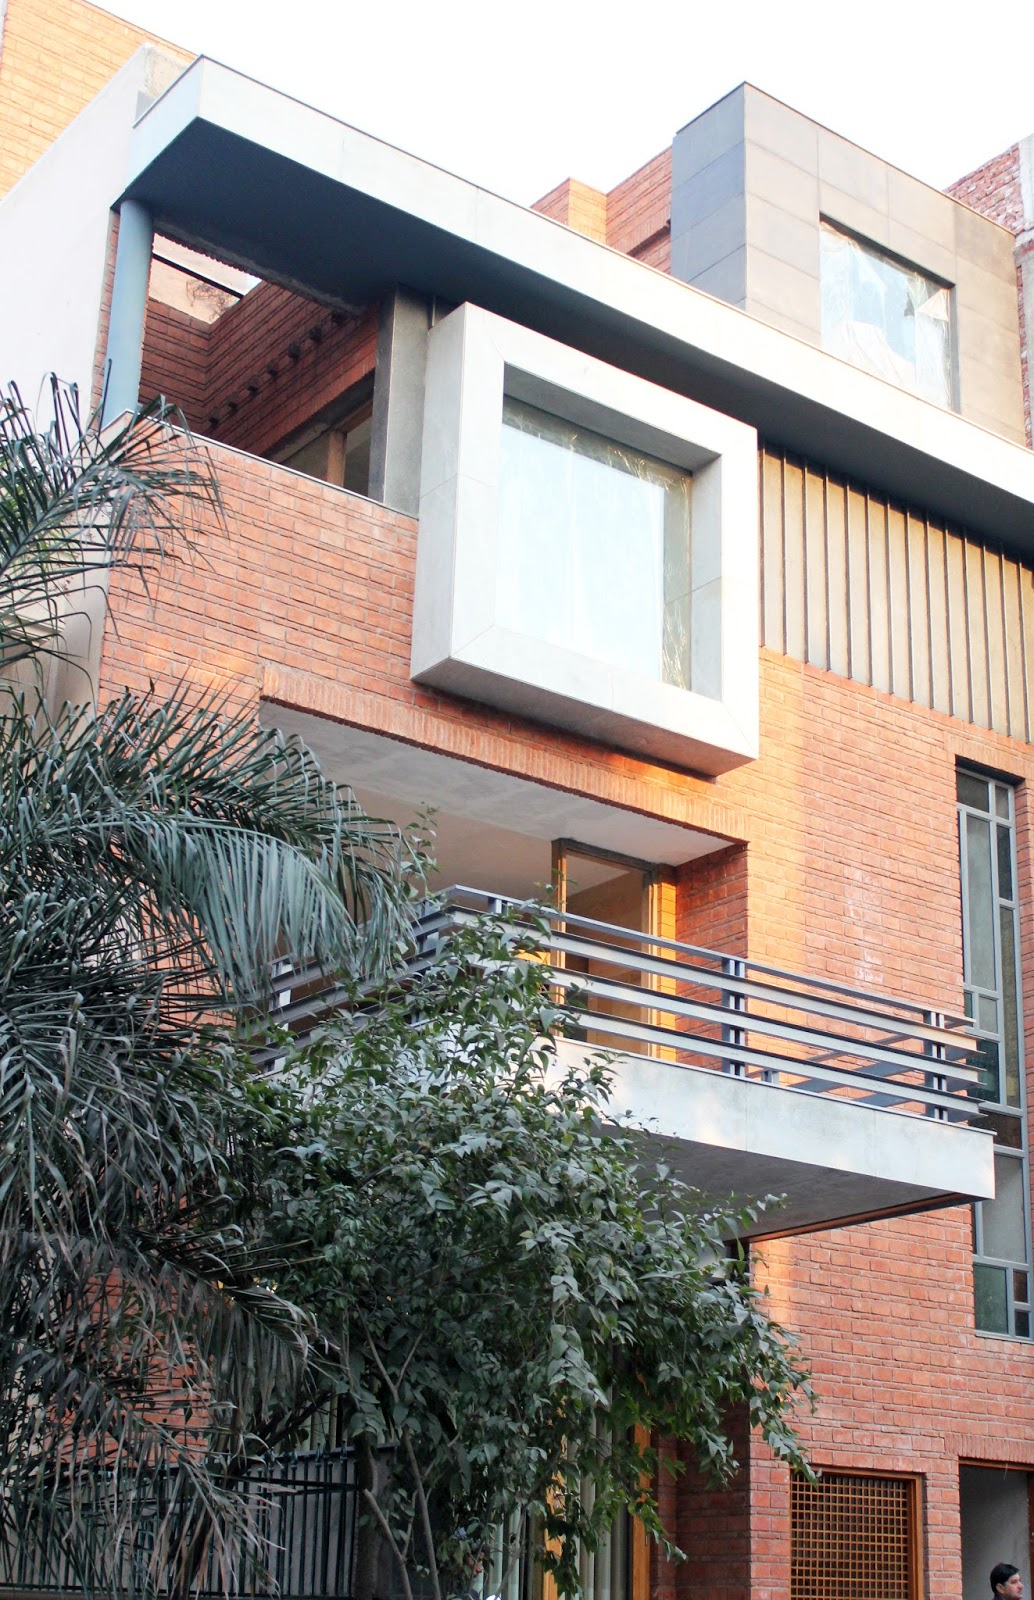 Akda amit khanna design associates de stijl house new for Architecture design for home in delhi